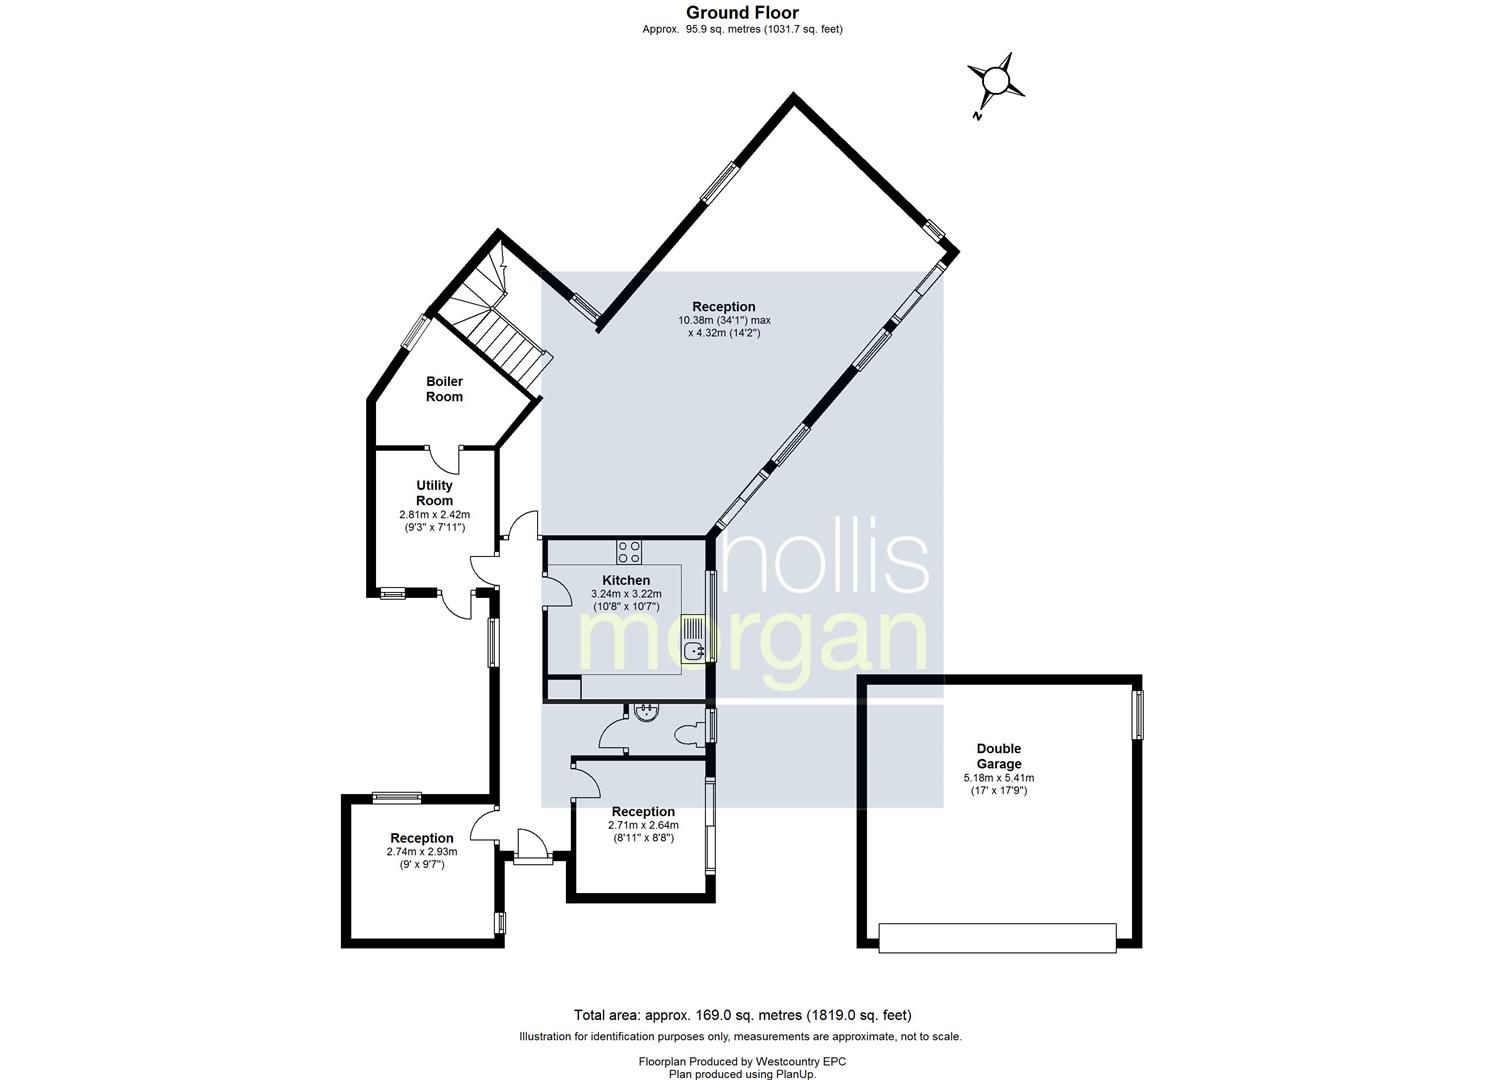 Floorplans For Thorndale Mews, Bristol